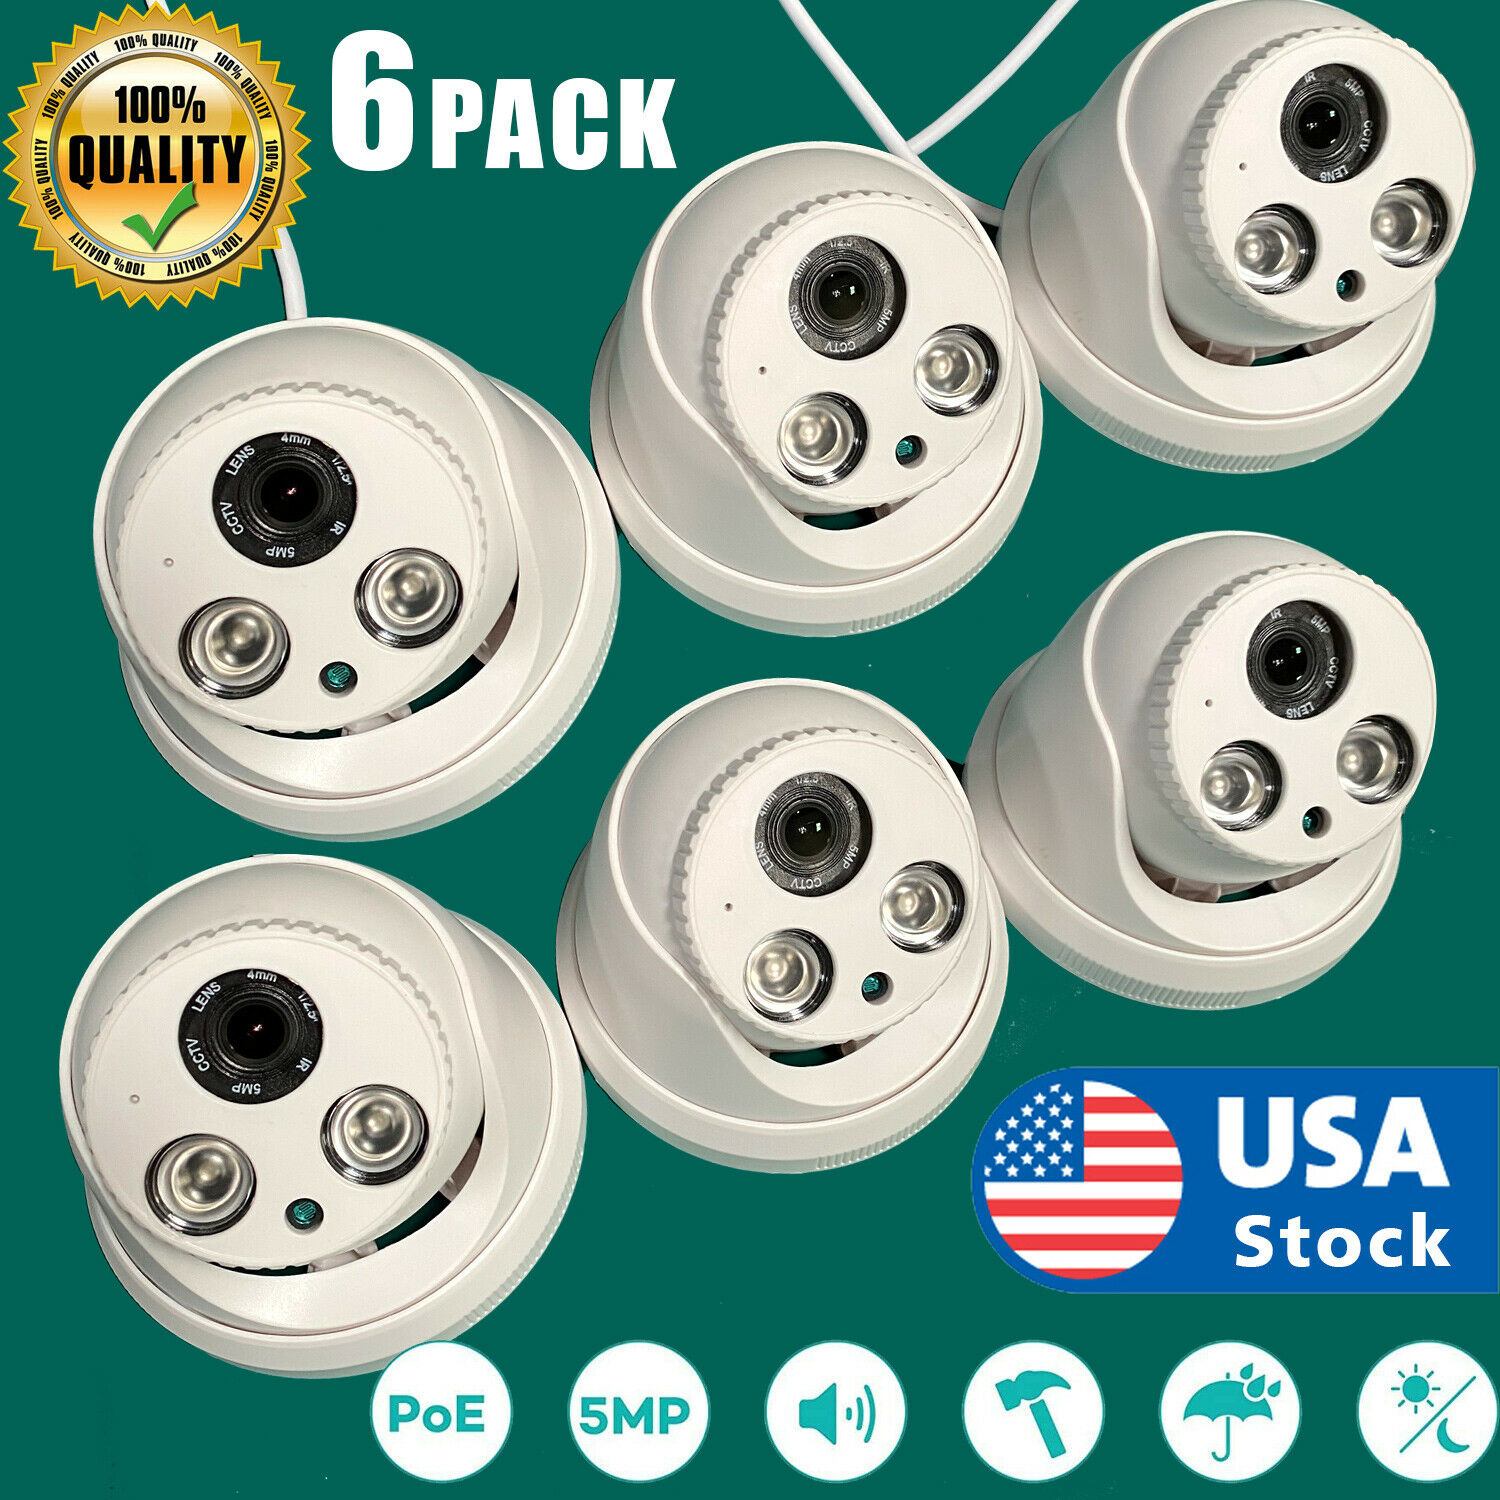 6Pack 5MP IR outdoor POE Dome IP CCTV Security Camera 4mm H.265 NVR Night Vision Consumer Electronics